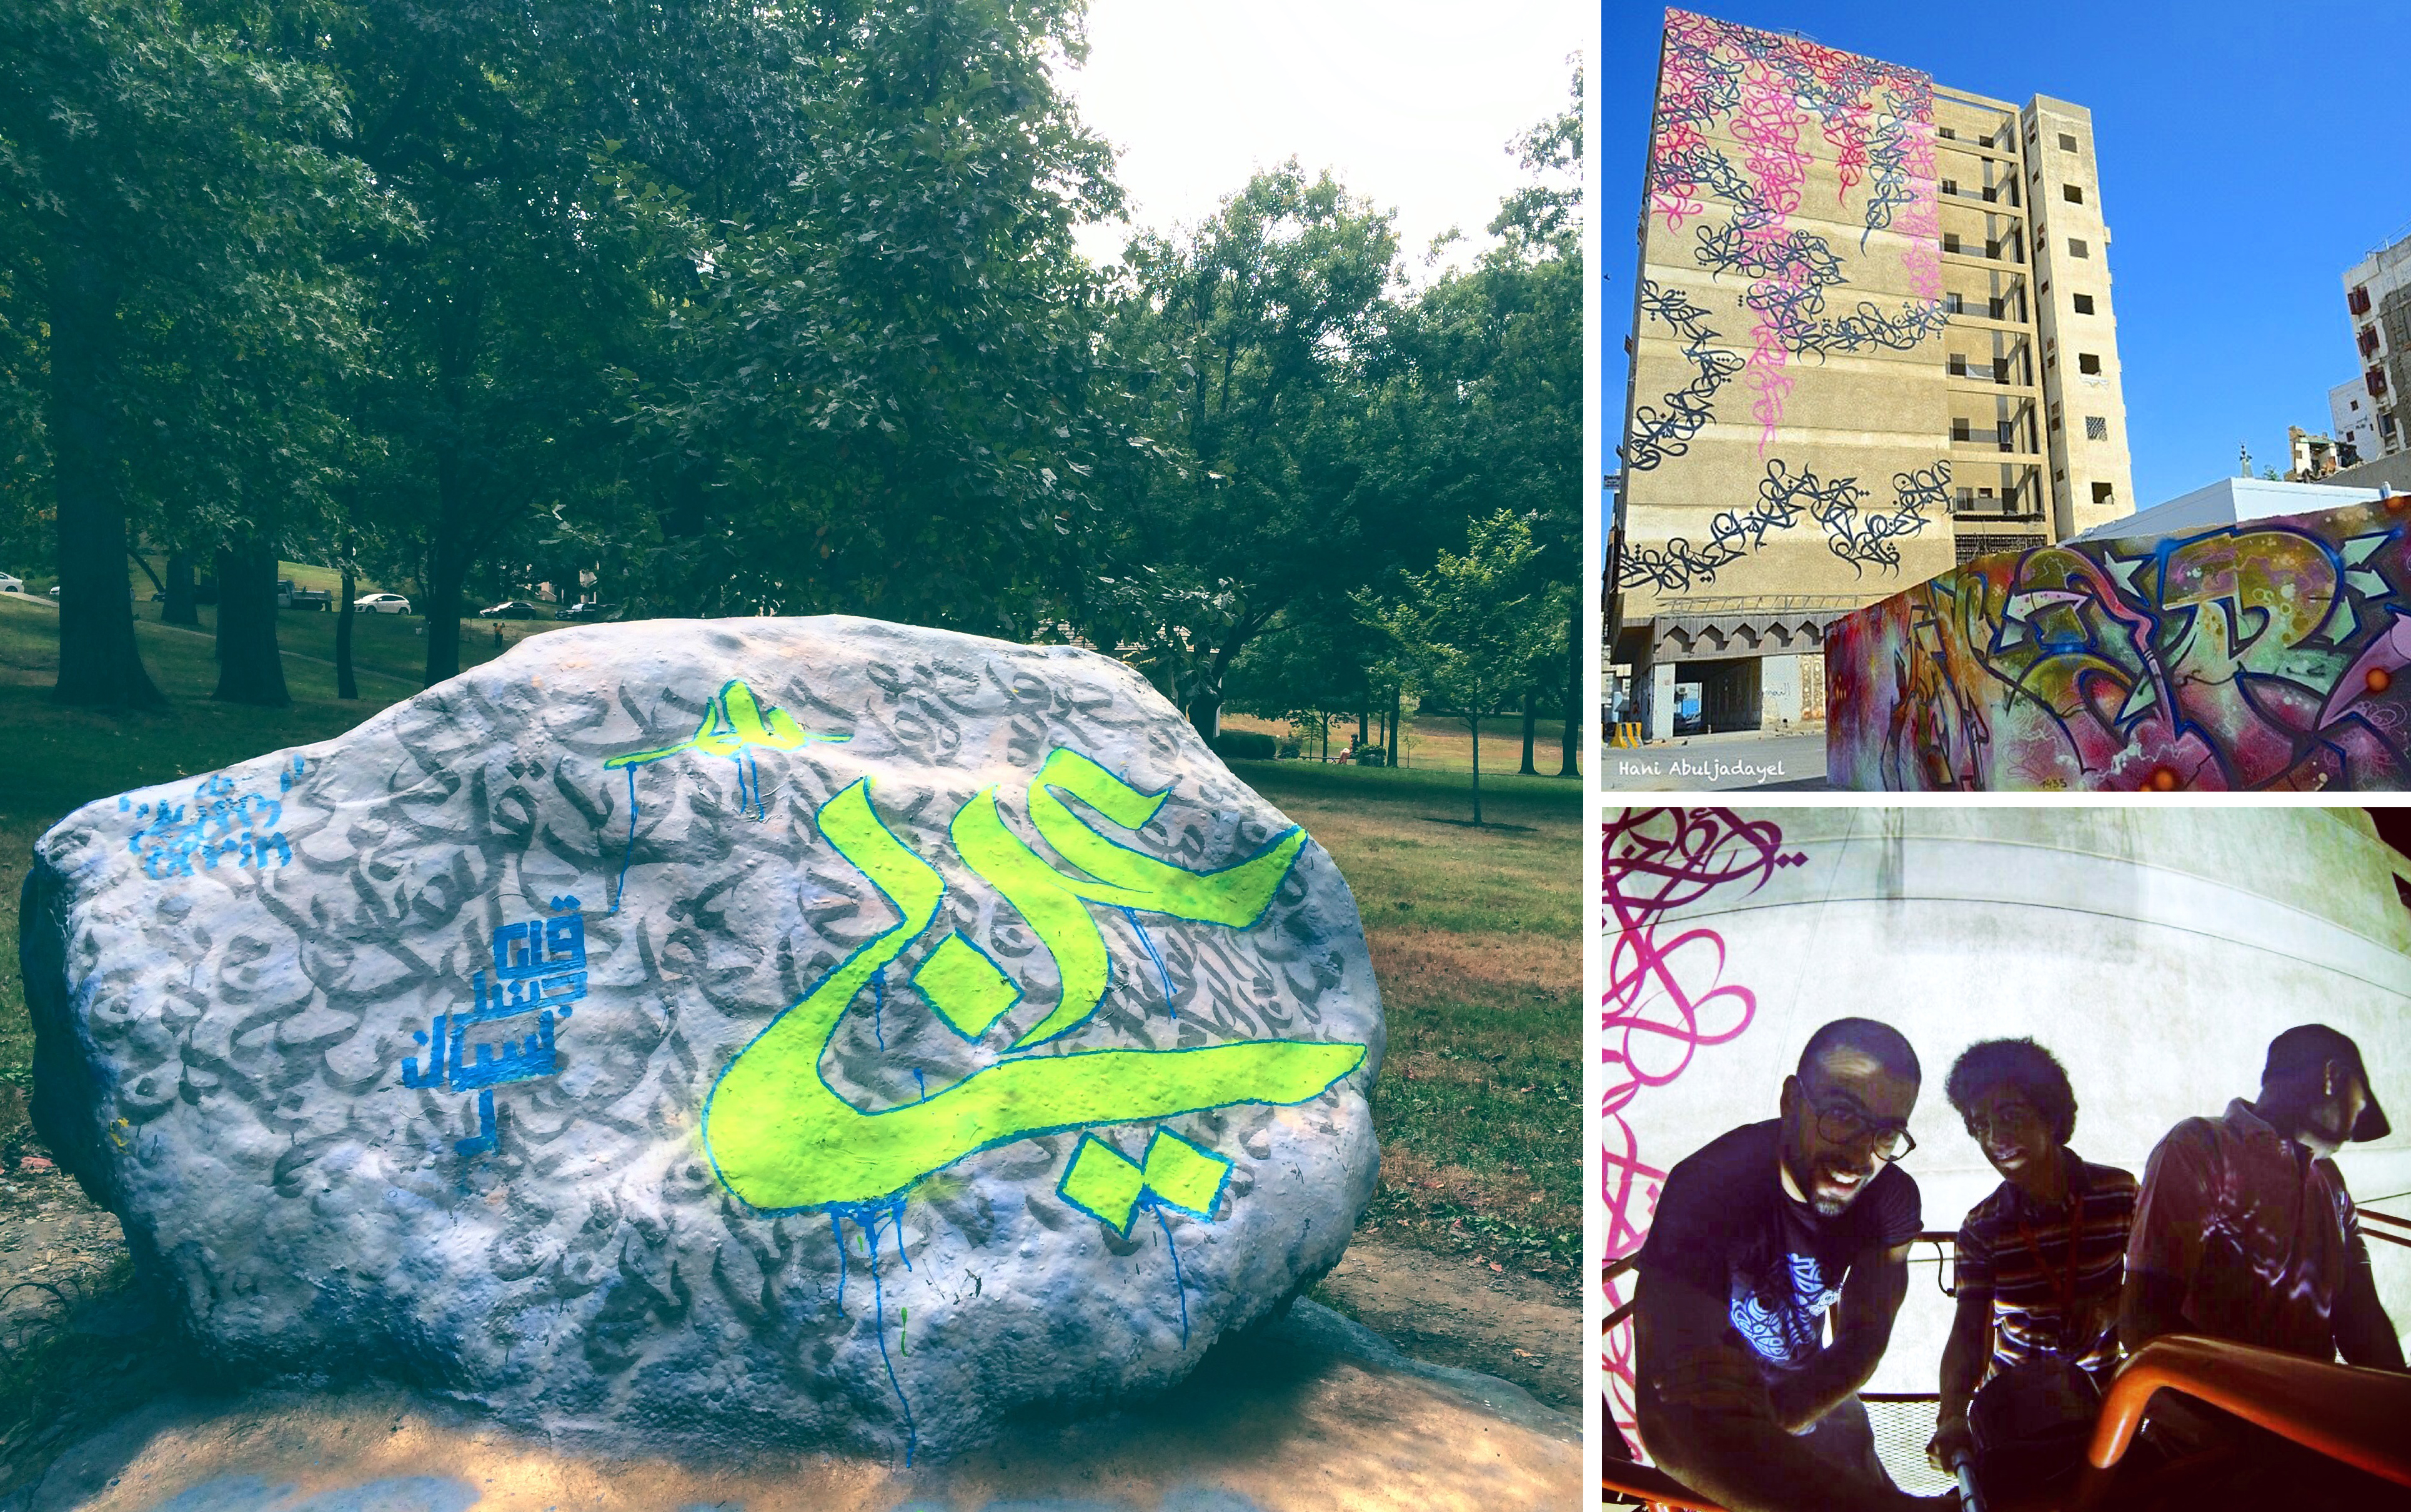 "Left: Abdullah Samarin's calligraphy on Kent State's rock. Right: Samarin won a competition to help French-Tunisian artist eL Seed paint the mural ""Poetic Ballad"" (inspired by the poetry of a young Saudi Arabian poet) in the Old Town of Jeddah. The mural combines graffiti with traditional Arabic calligraphy and was created to change attitudes towards intolerance and extremism."